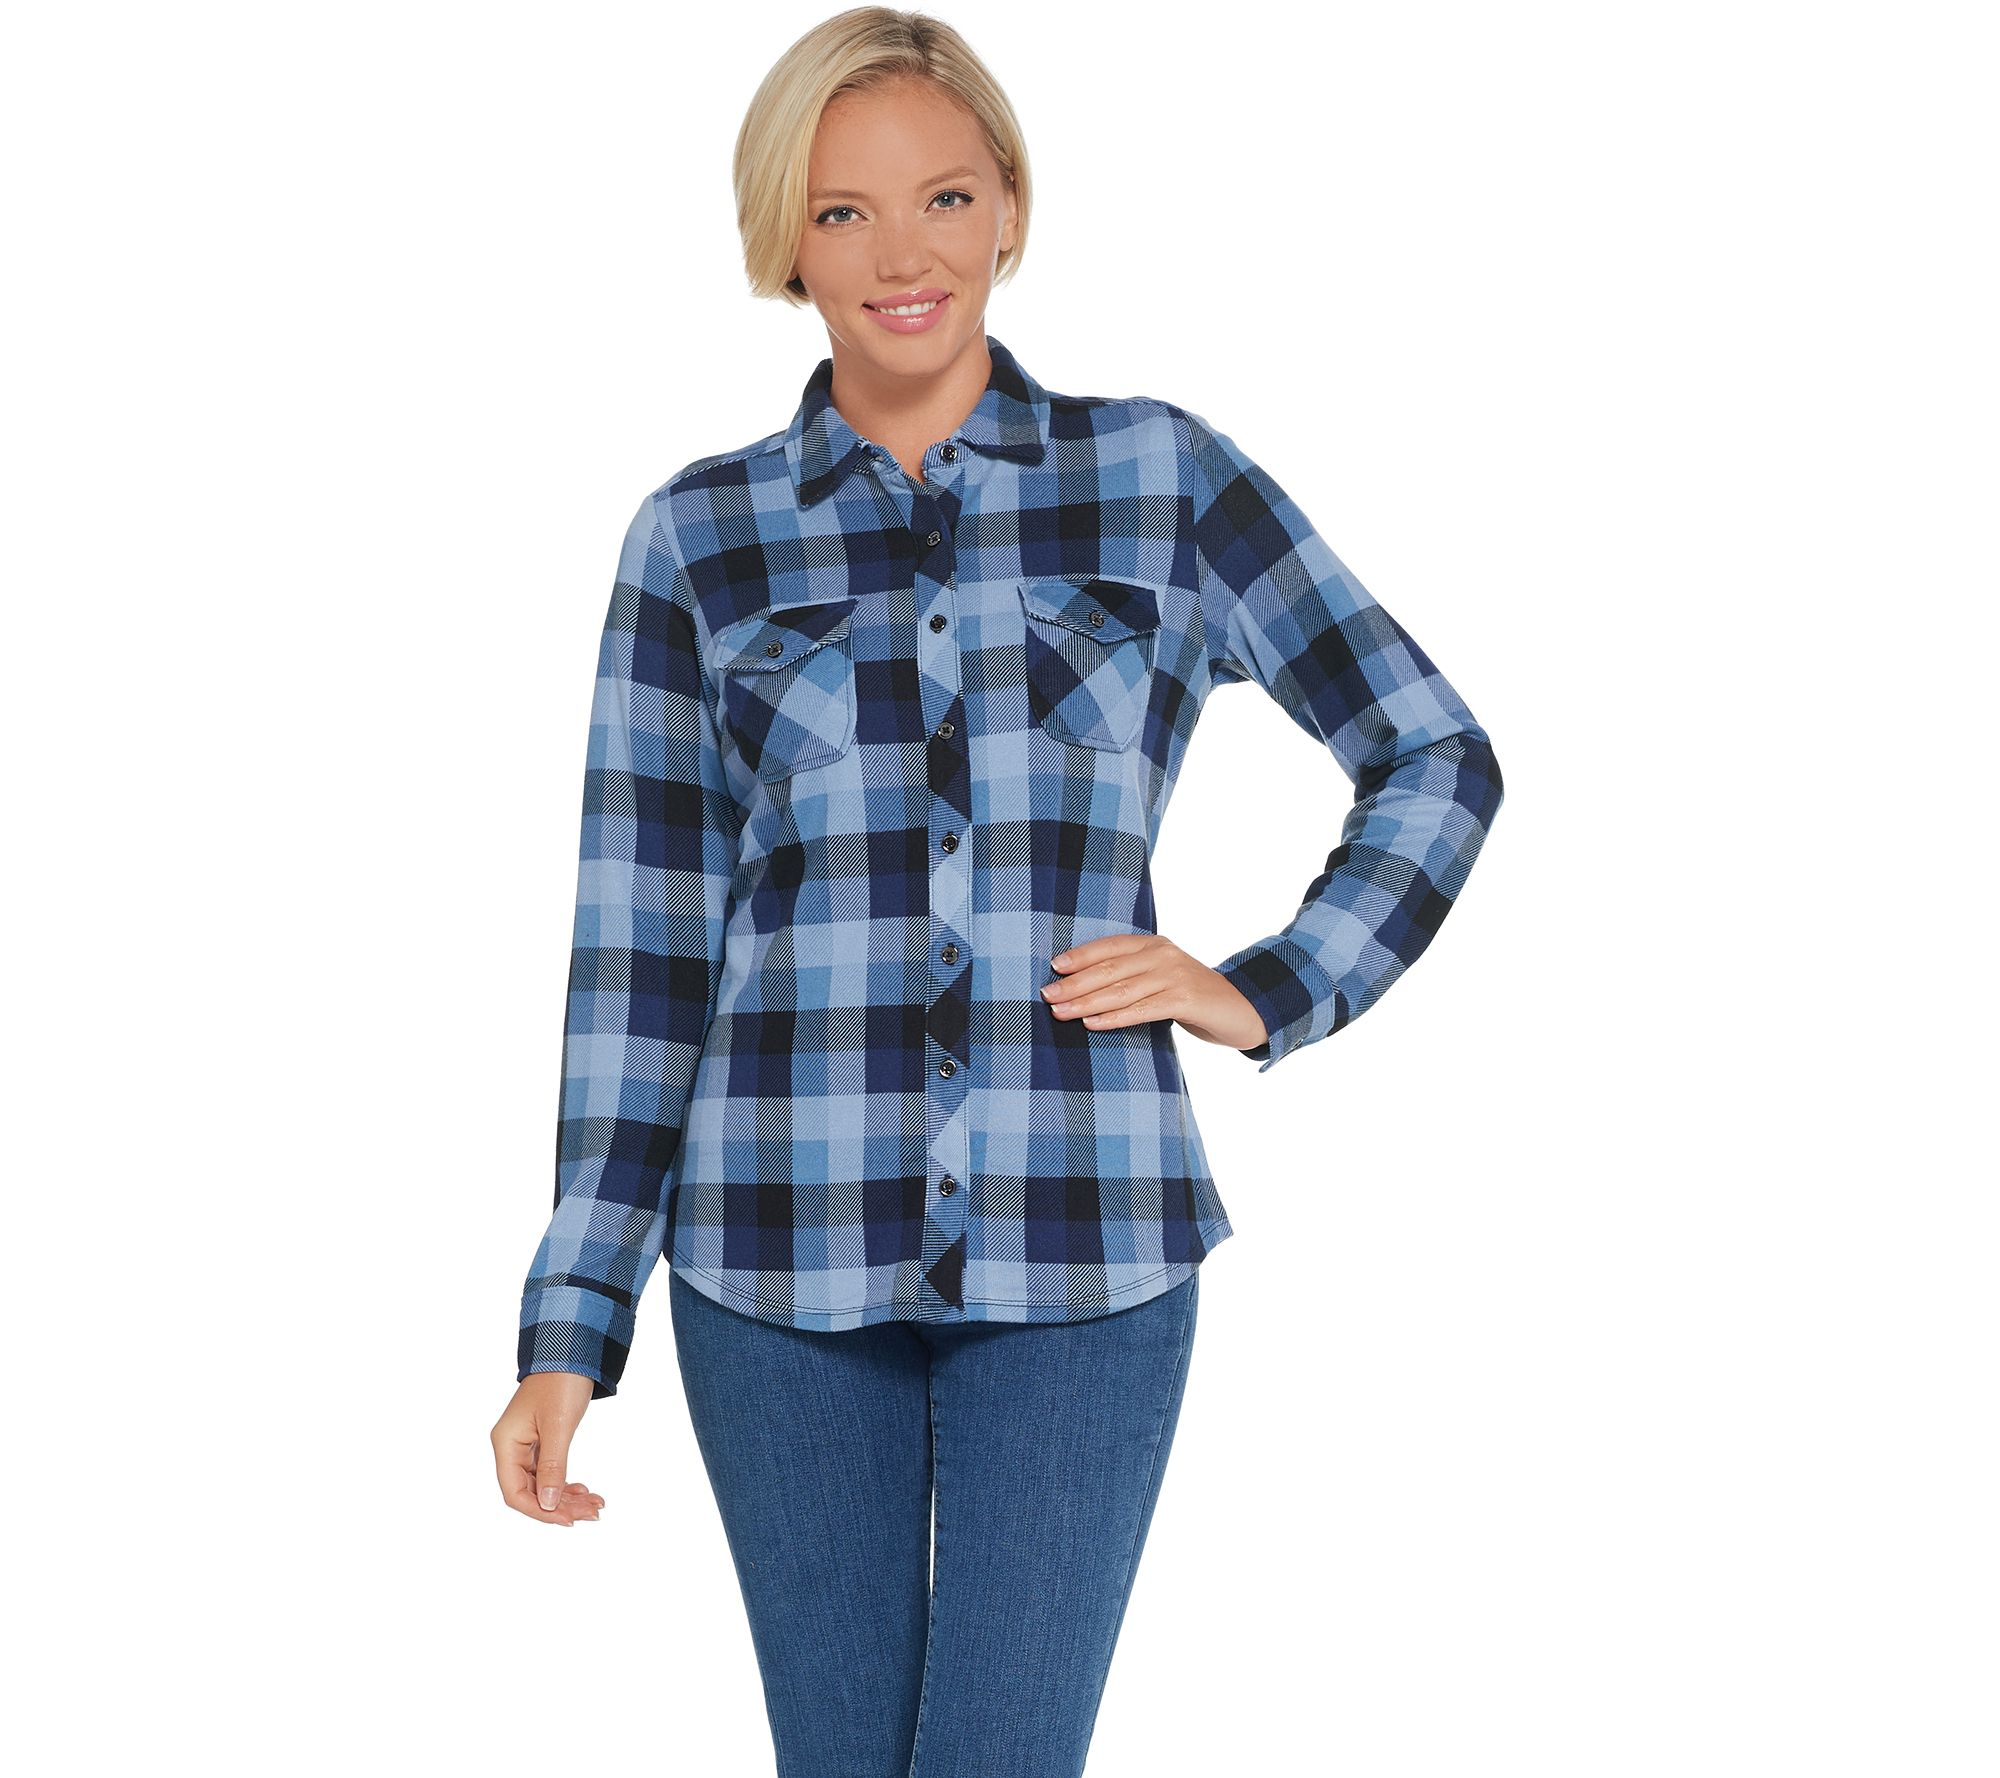 Denim & Co. Plaid Brushed Heavenly Jersey Button Front Long-Sleeve Top - A341843